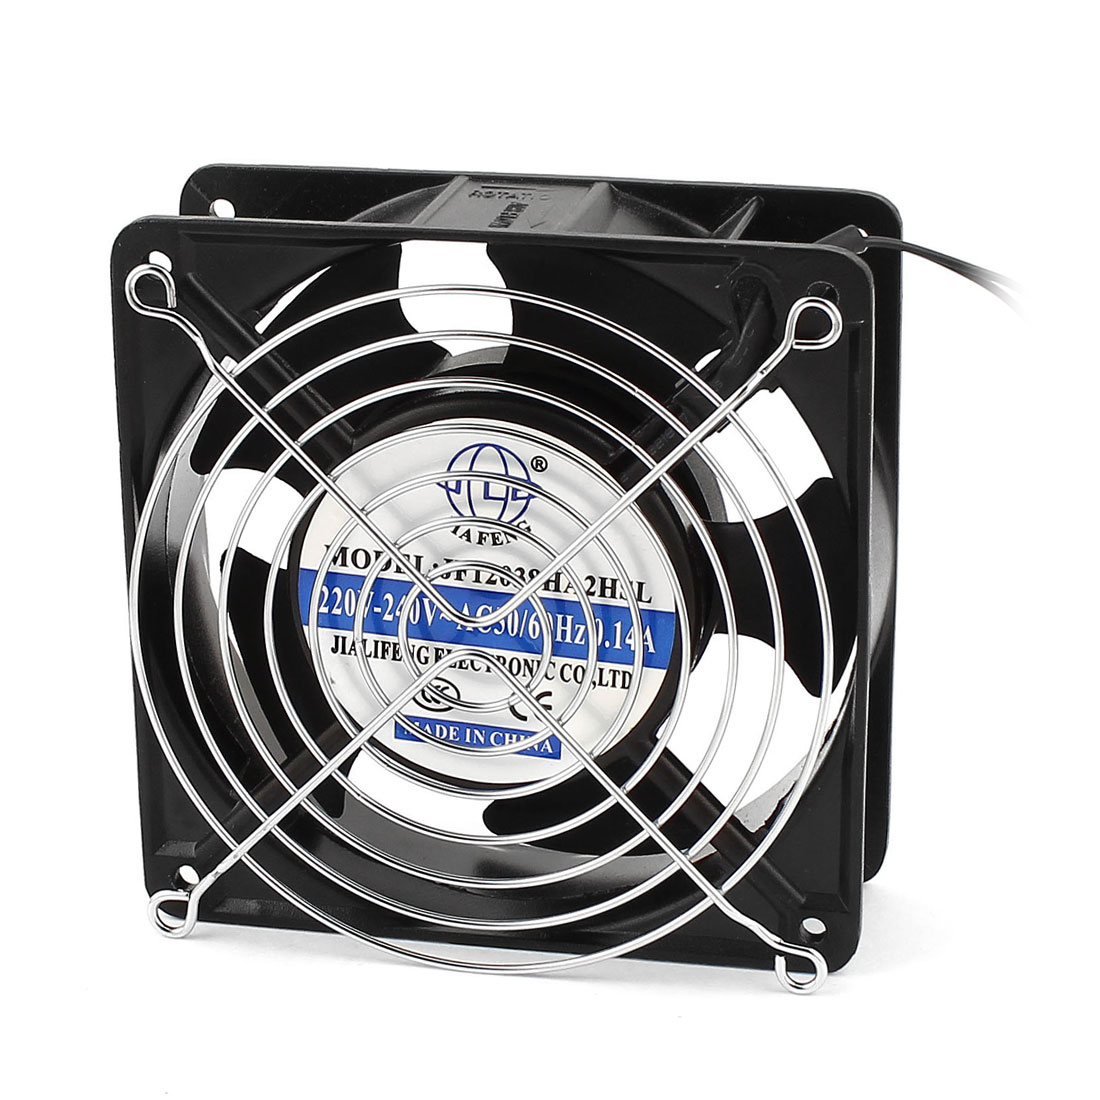 120mmx120mmx38mm 12038 5 Flabellums Case Cooling Fan Cooler AC 220V-240V 0.14A w 2 Grills